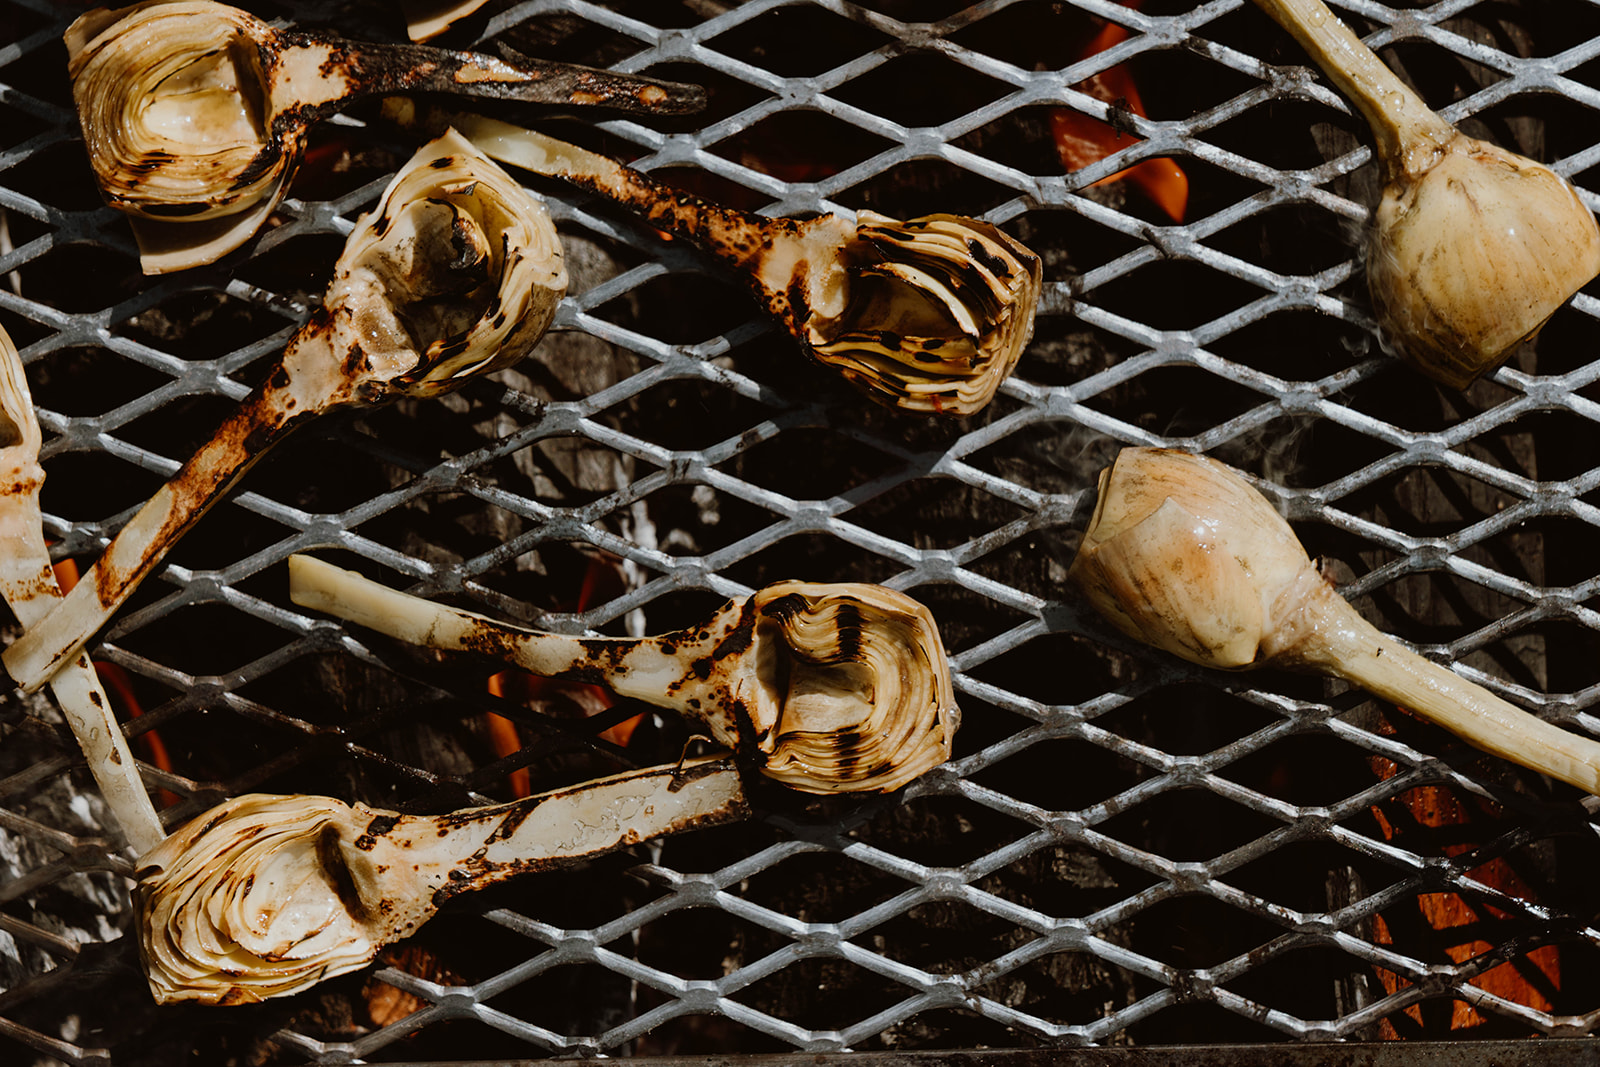 Onions on a grill over open flame.